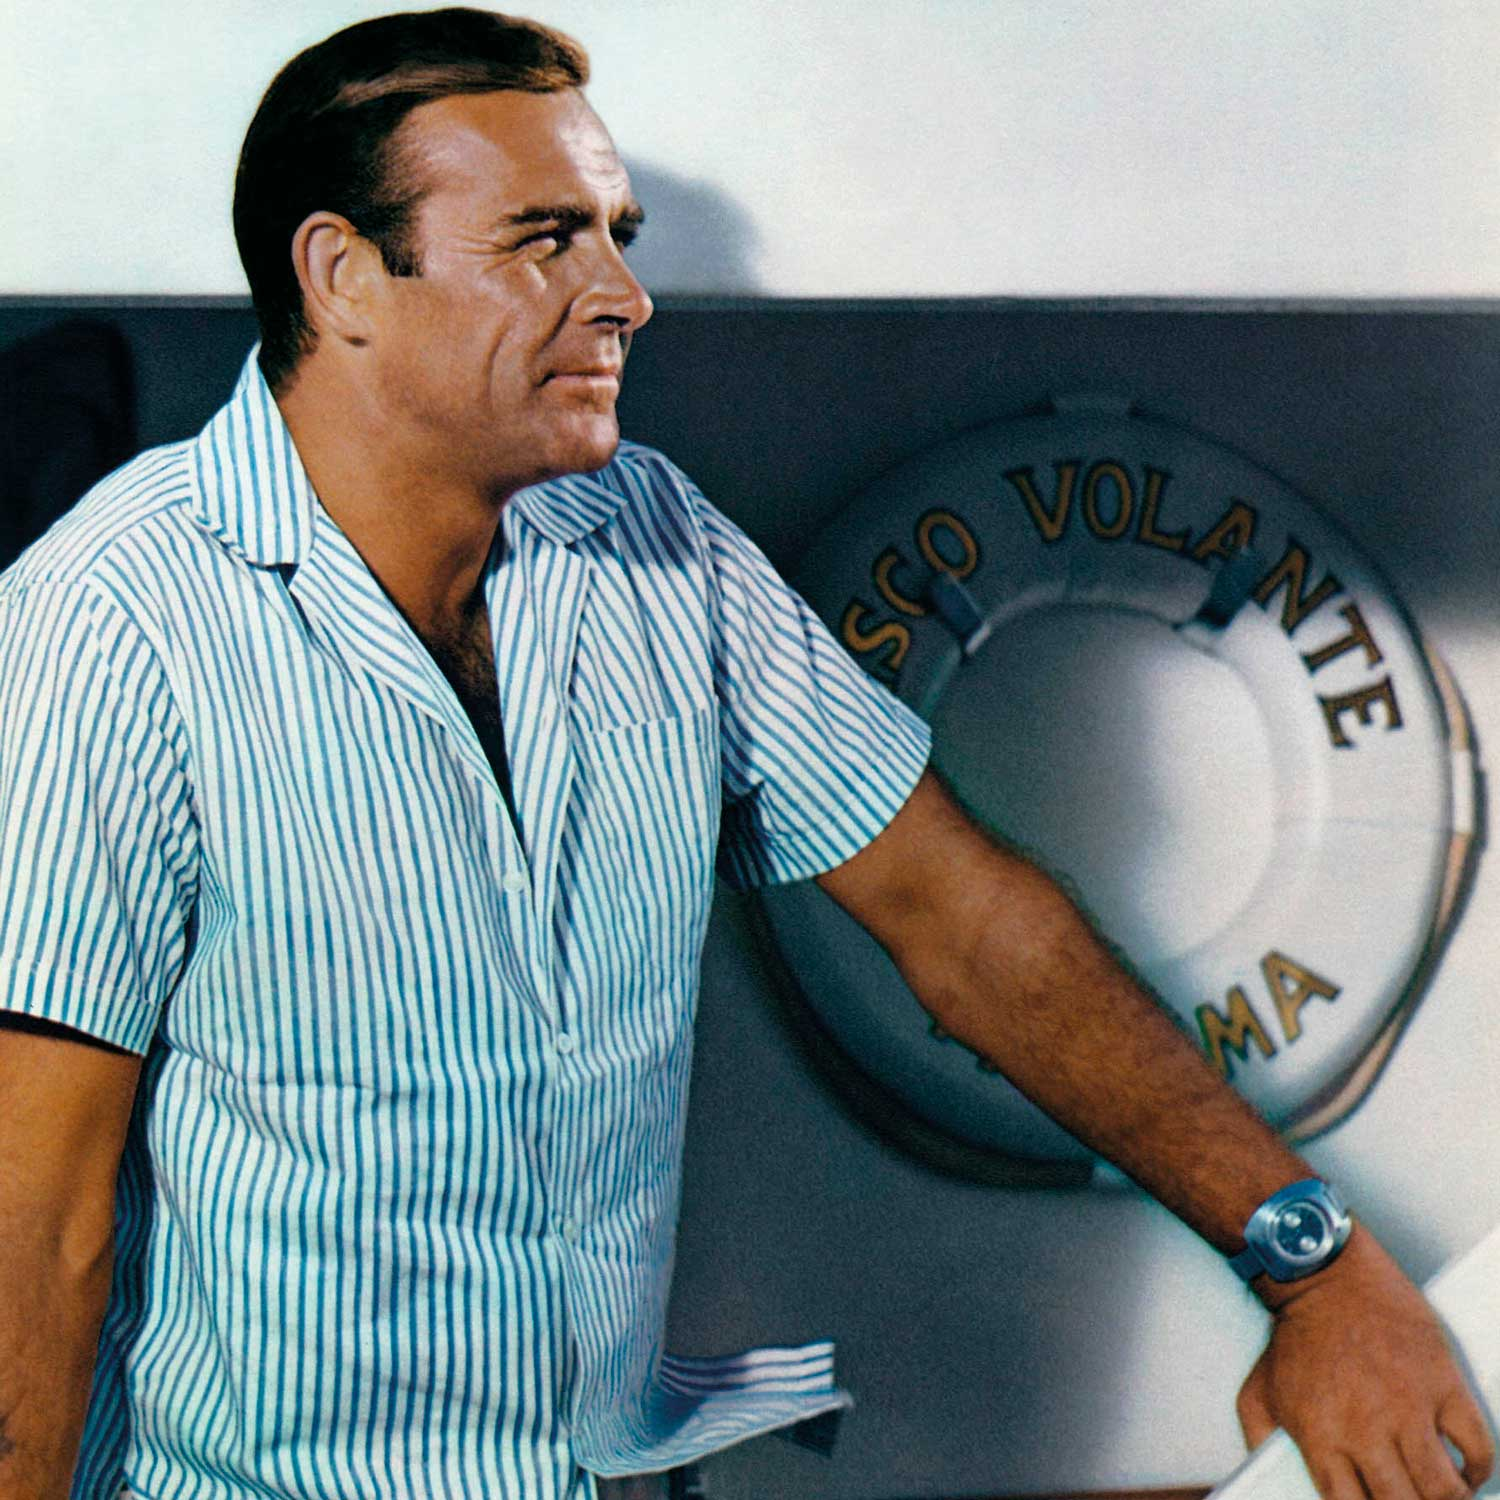 Sean Connery as James Bond in the 1965 instalment, Thunderball. On his wrist a special Breitling Top Time, outfitted by Q with a Geiger counter